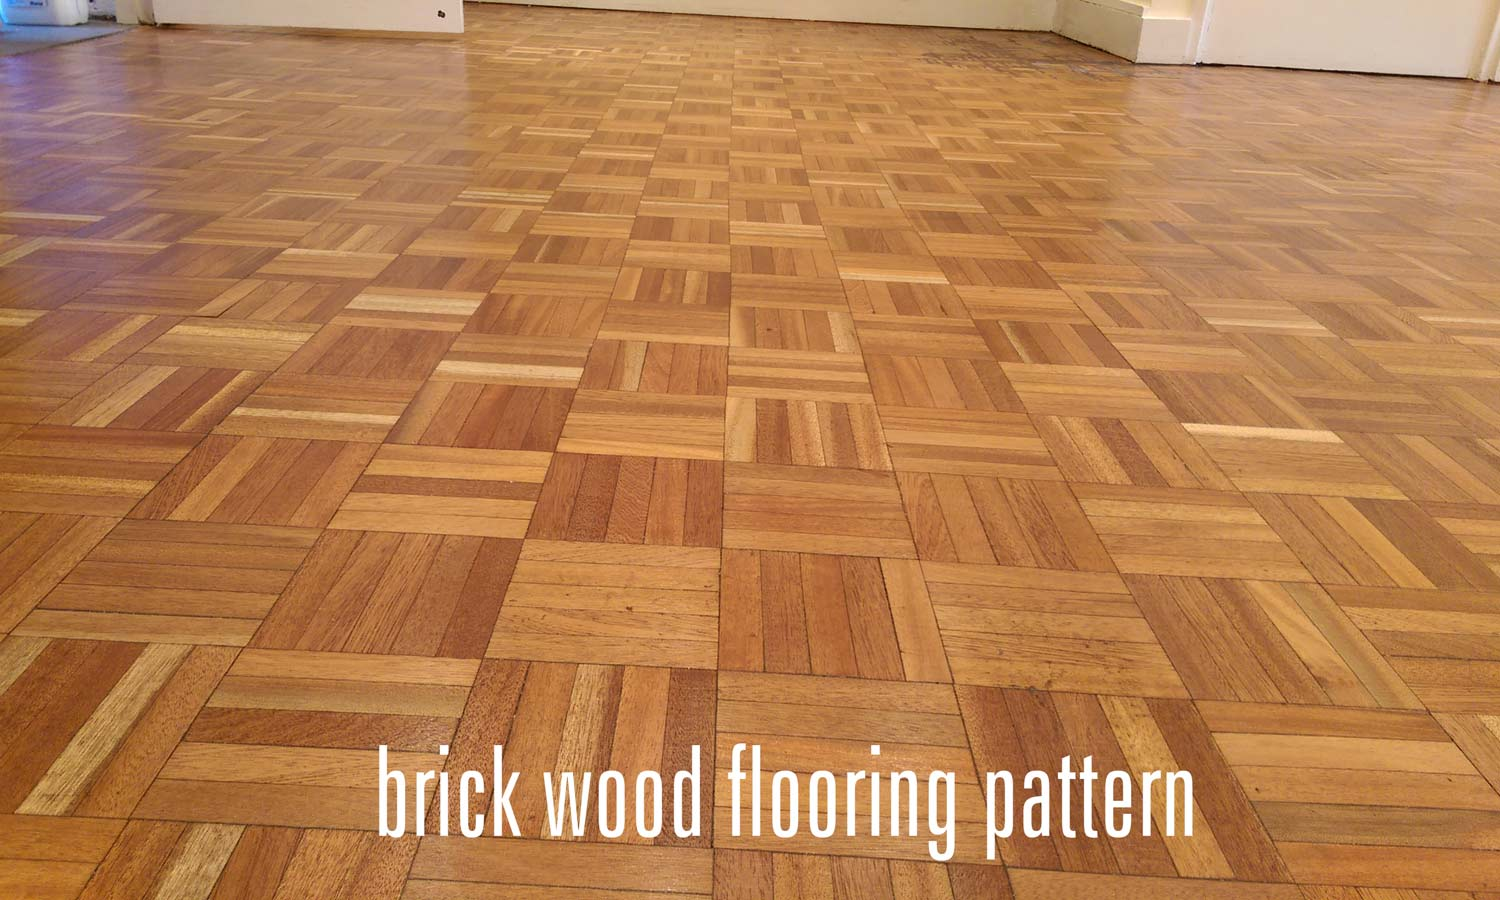 The 7 most common wood flooring patterns wood floor fitting for Parquet wood flooring